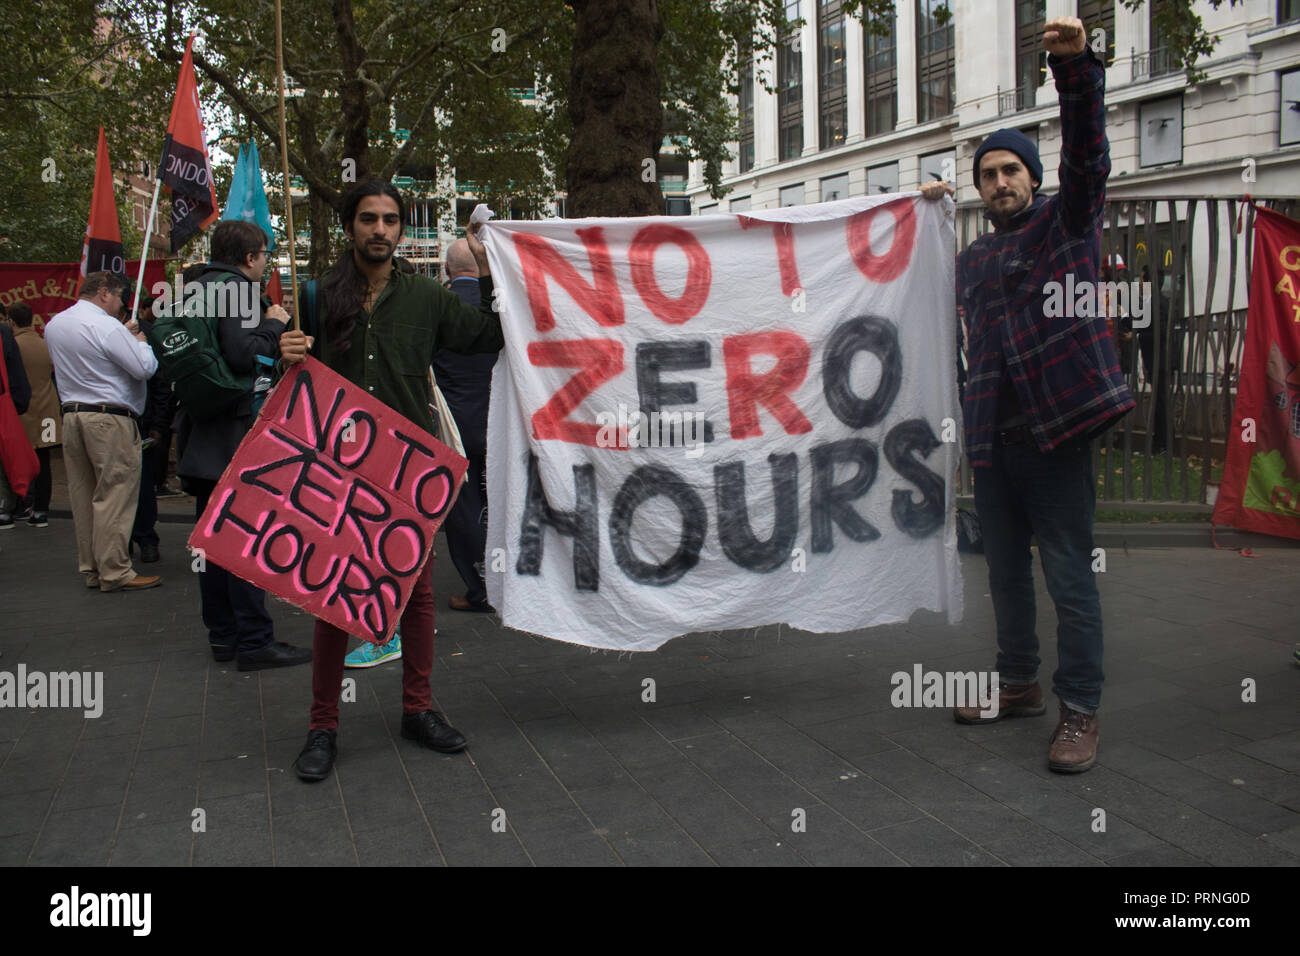 London, UK. 4th October, 2018. Staff Workers from McDonald's, JD Wetherspoon and TGI Fridays and UberEats riders took part in a strike in Leicester Square over pay campaigning for £10 an hou,  an end to Zero Hour contracts and fairer tips Credit: amer ghazzal/Alamy Live News - Stock Image